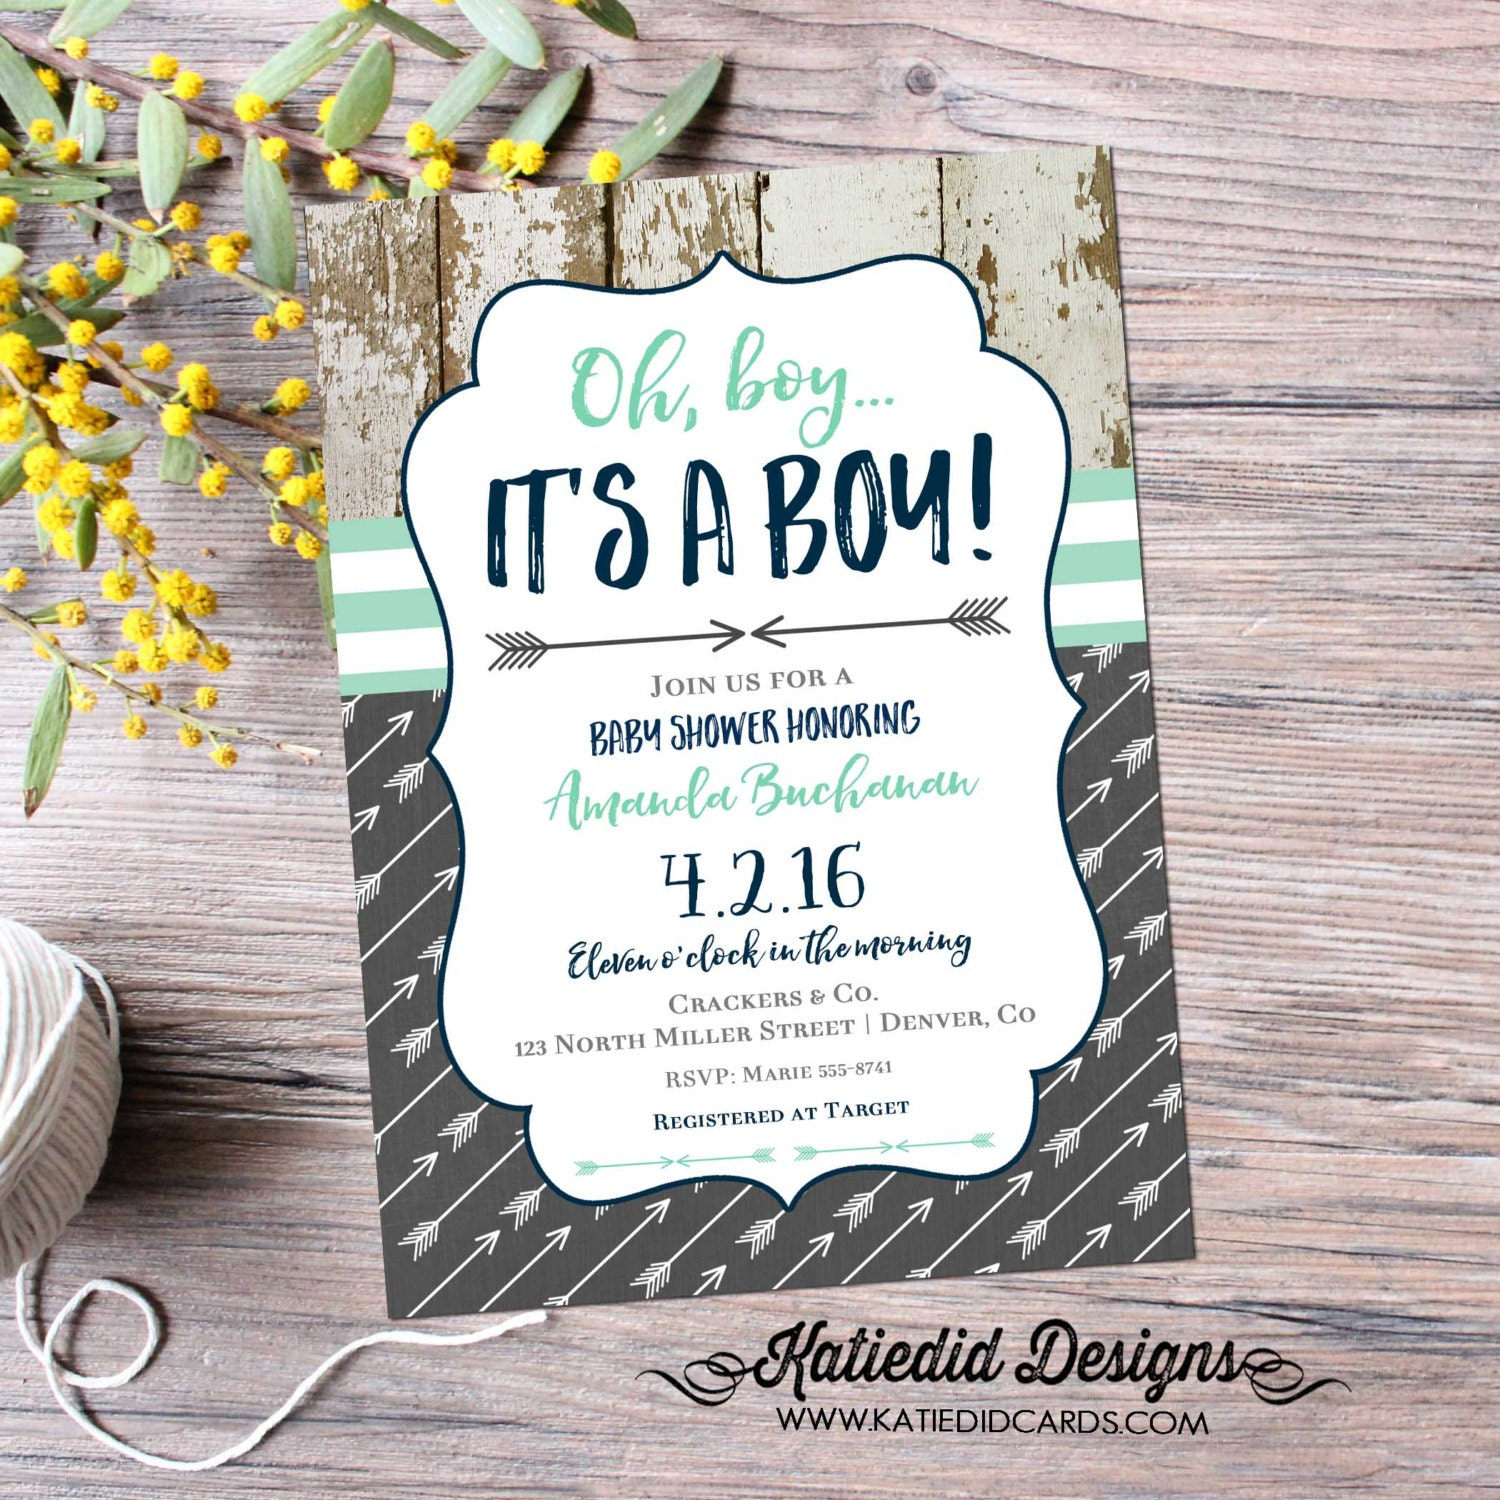 tribal baby shower invitation boho chic oh boy arrow sprinkle mint, Baby shower